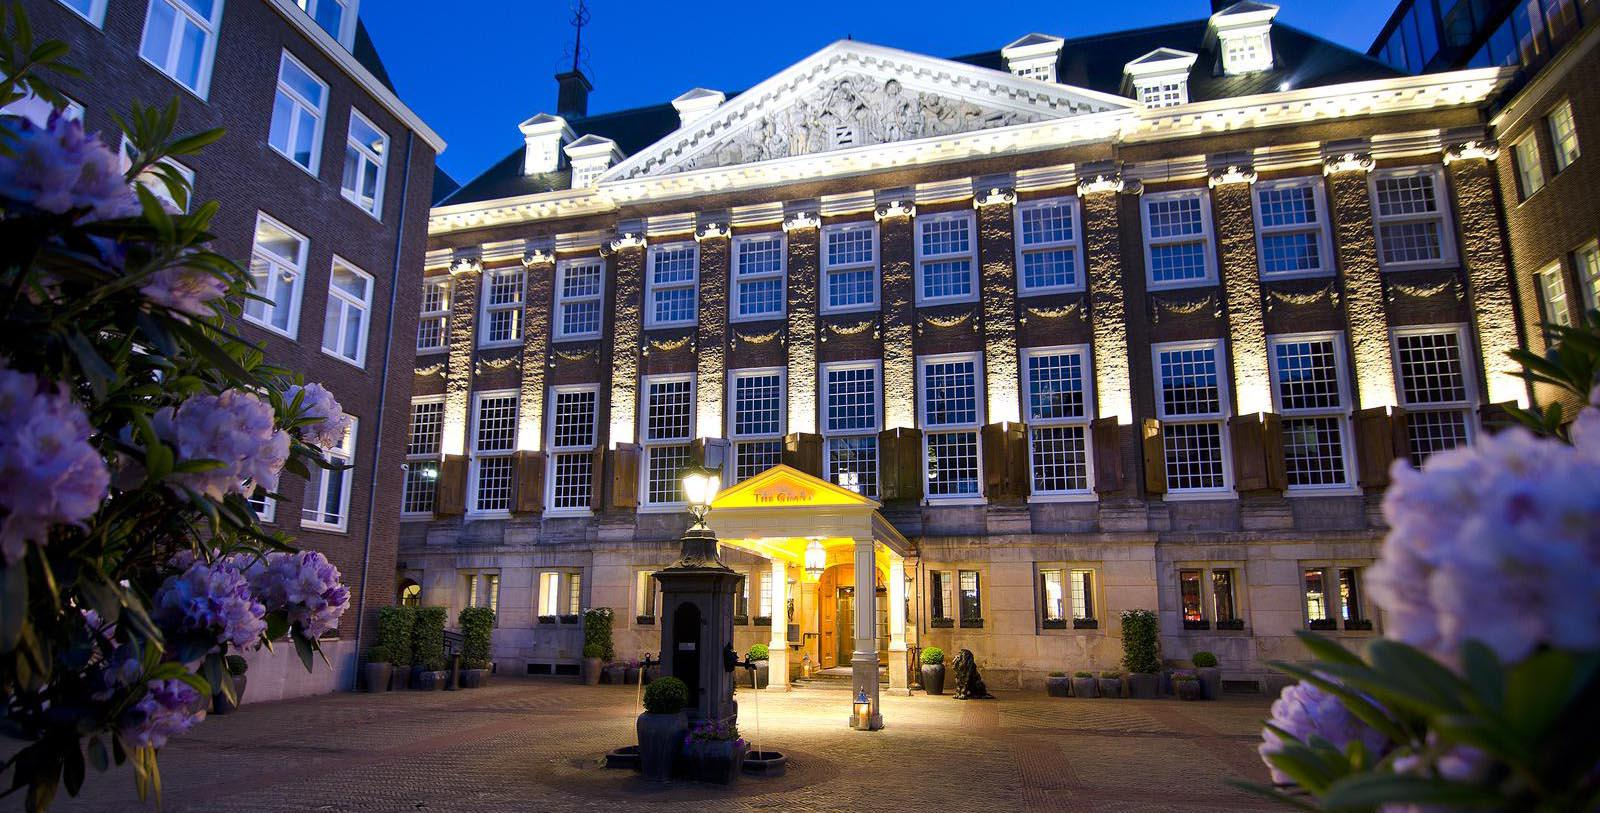 Image of Hotel Exterior Sofitel Legend The Grand Amsterdam, 1578, Member of Historic Hotels Worldwide, in Amsterdam, Netherlands, Overview